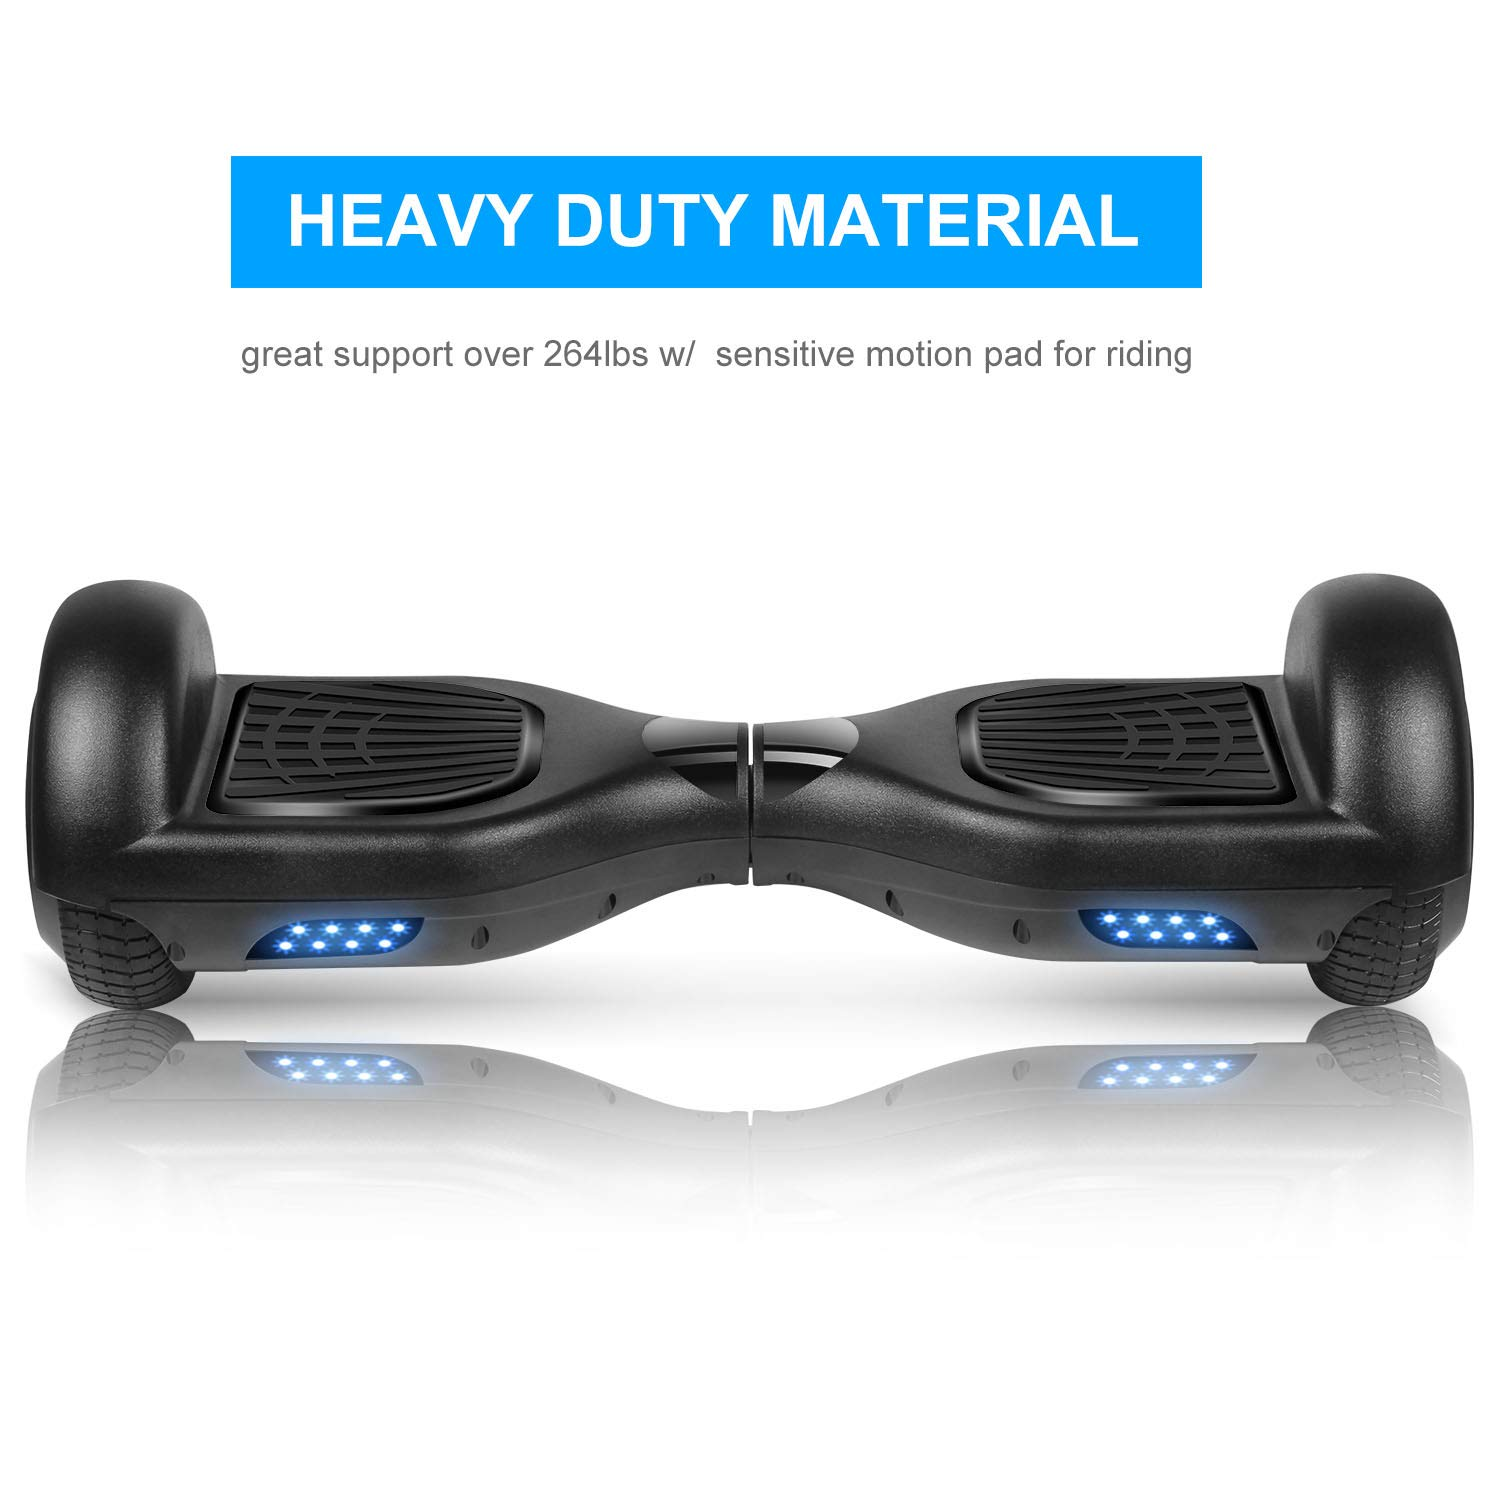 SWEETBUY Hoverboards UL Certified 6.5 Smart Scooter Two-Wheel self Balancing Electric Scooter Light Free Bag and Charger Included by SWEETBUY (Image #5)